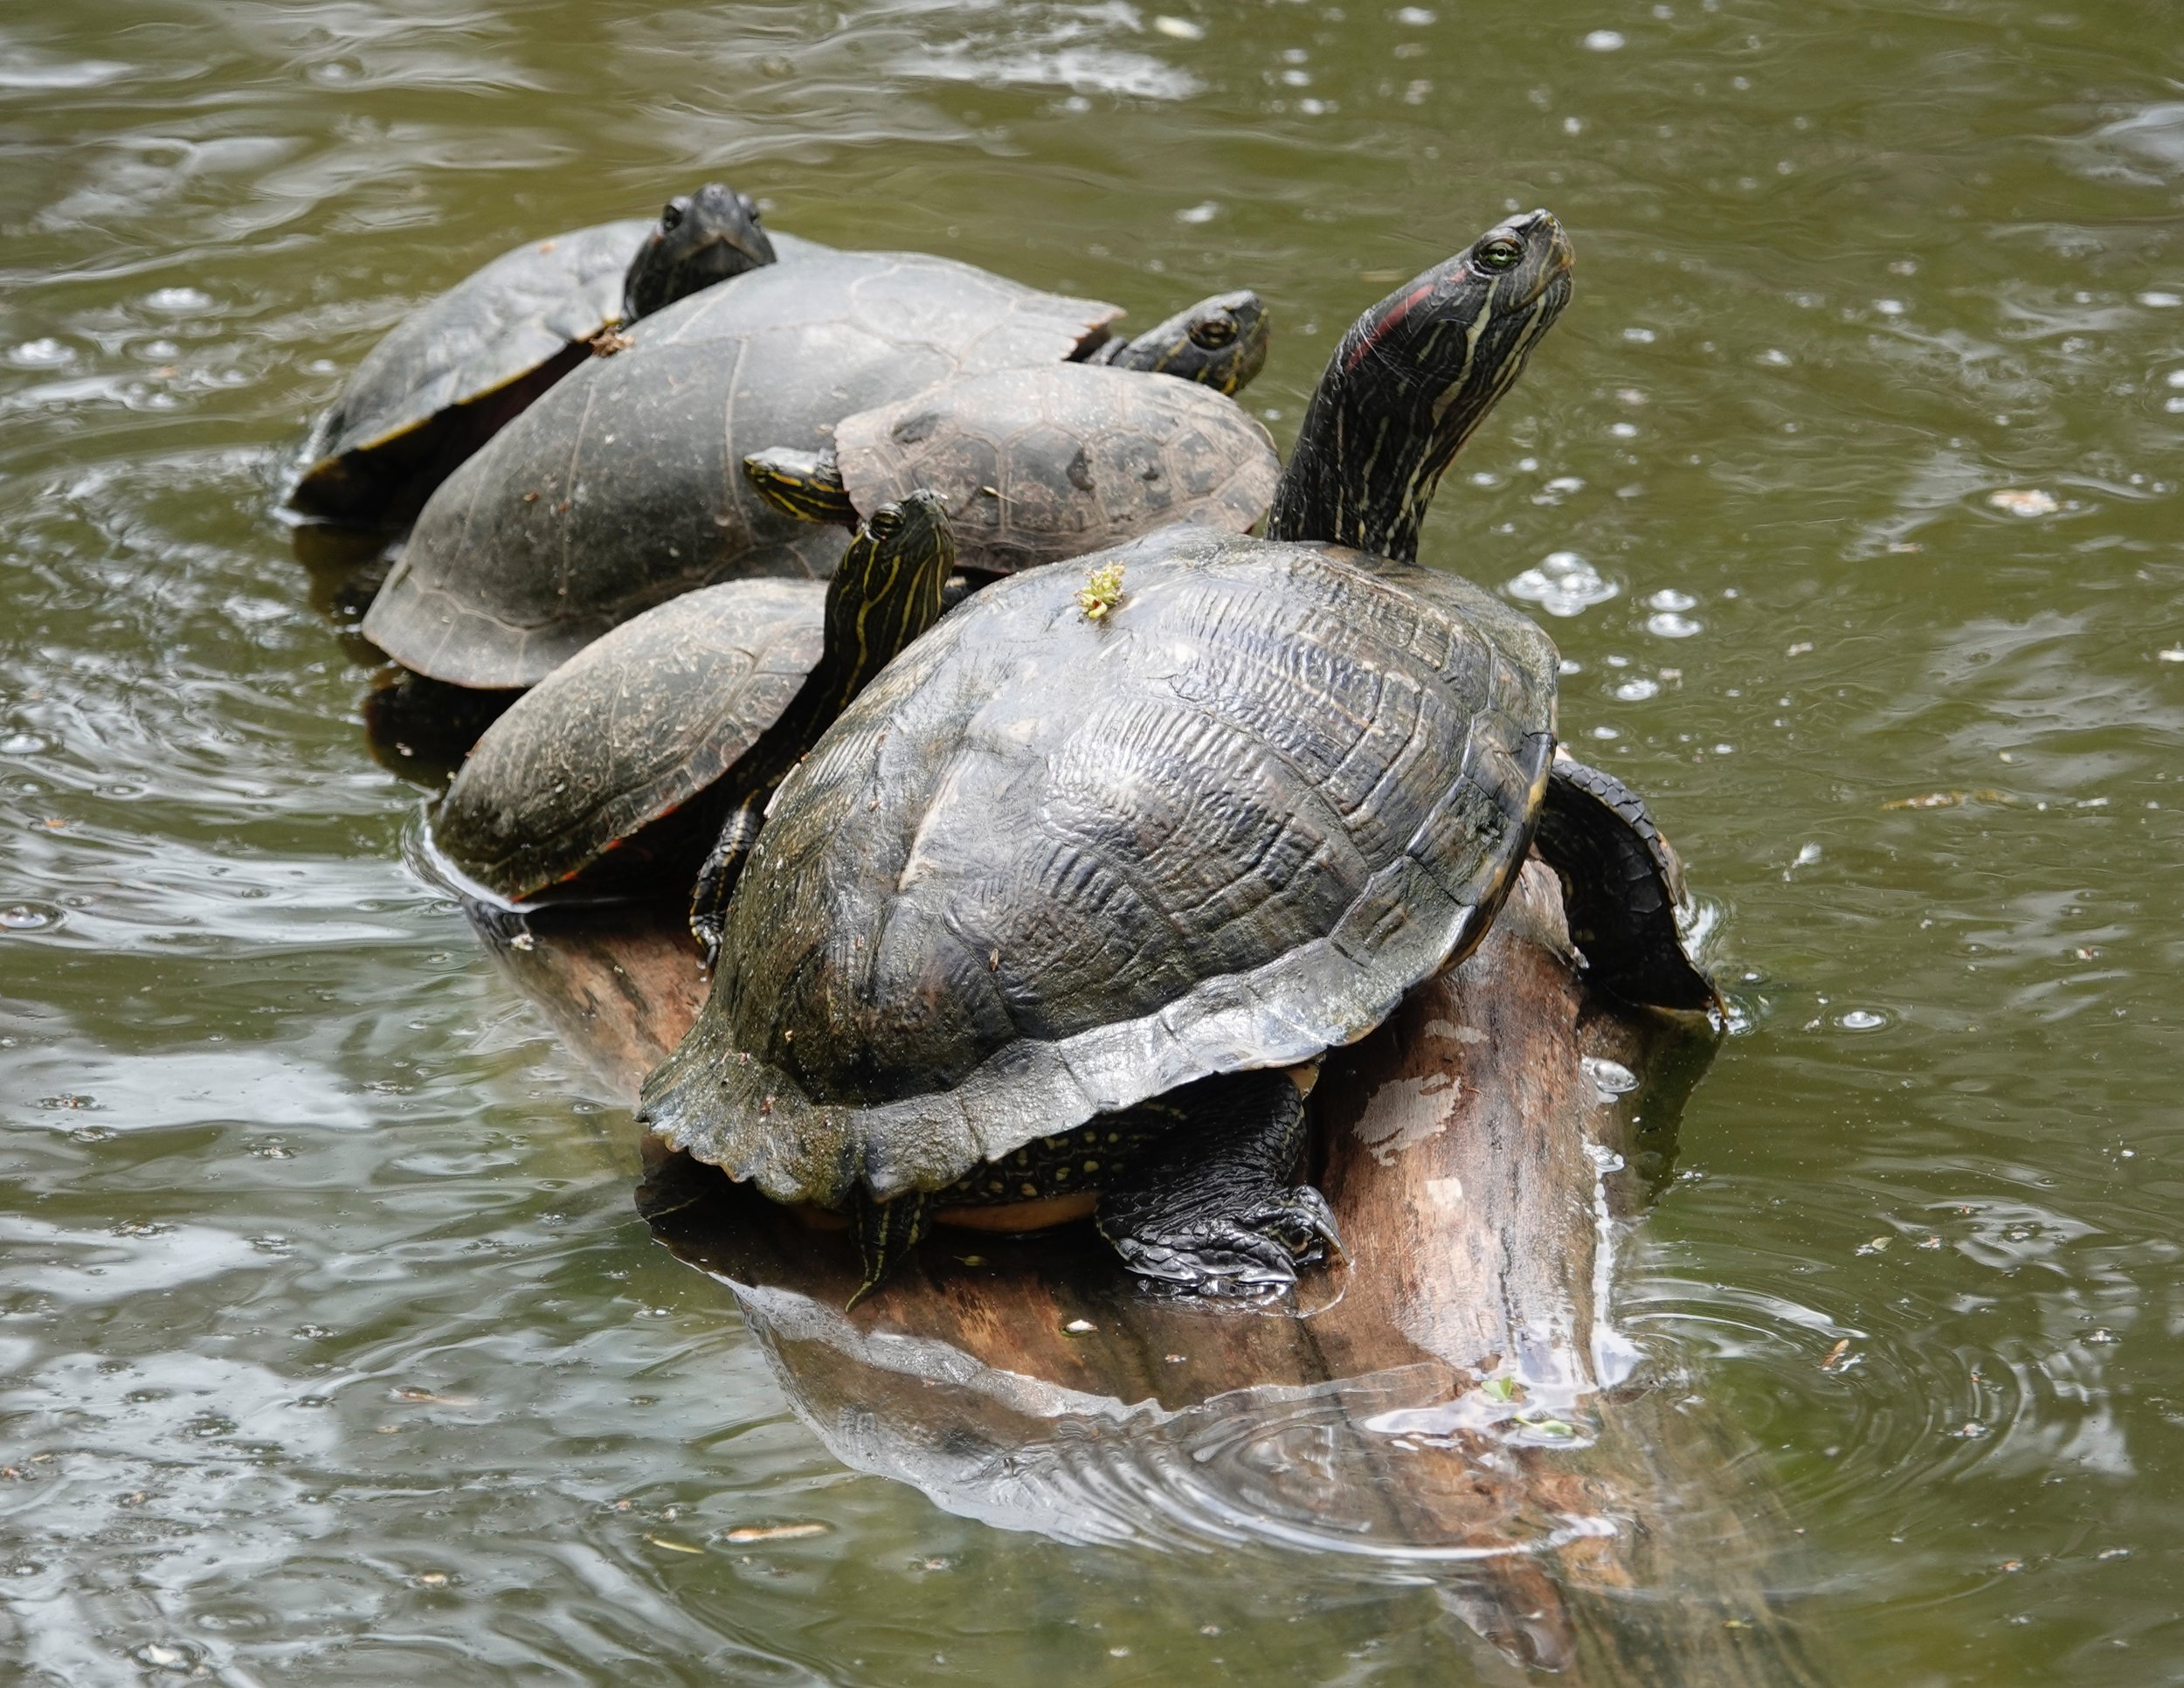 A red-eared slider hanging out with its buddies.